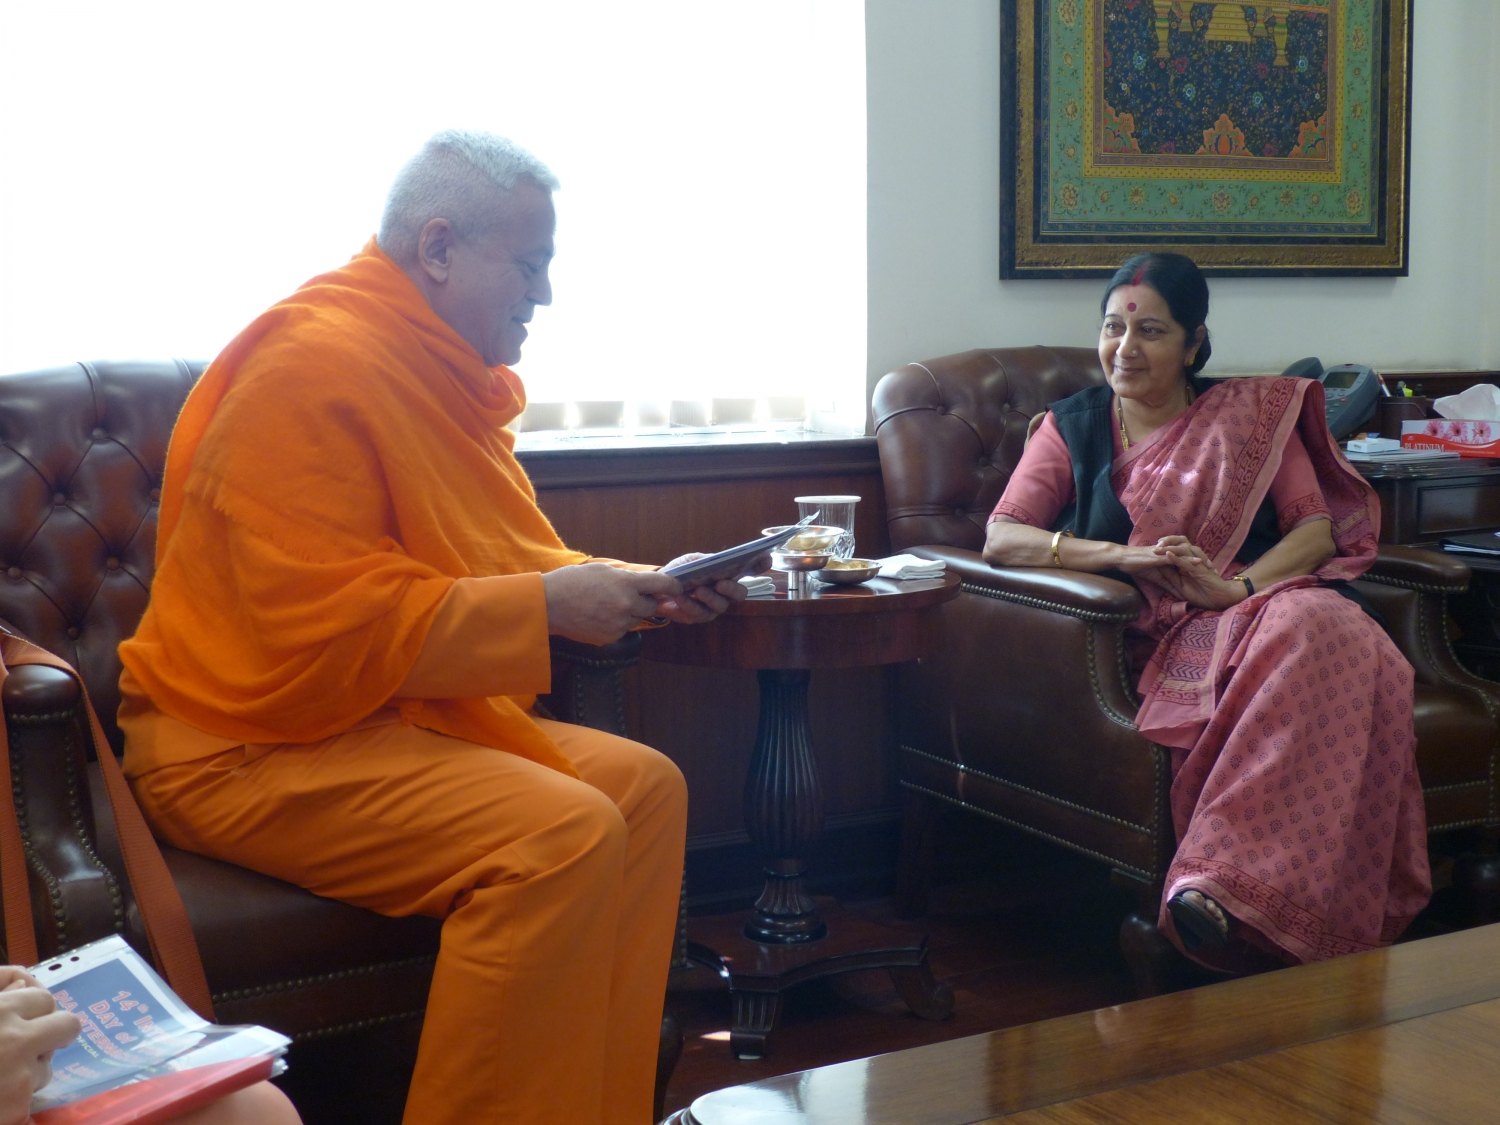 Meeting of H.H. Jagat Guru Amrta Sūryānanda Mahā Rāja with H.E. the Minister of External Affairs of India - Smt. Sushma Swaraj - India - 2015, March